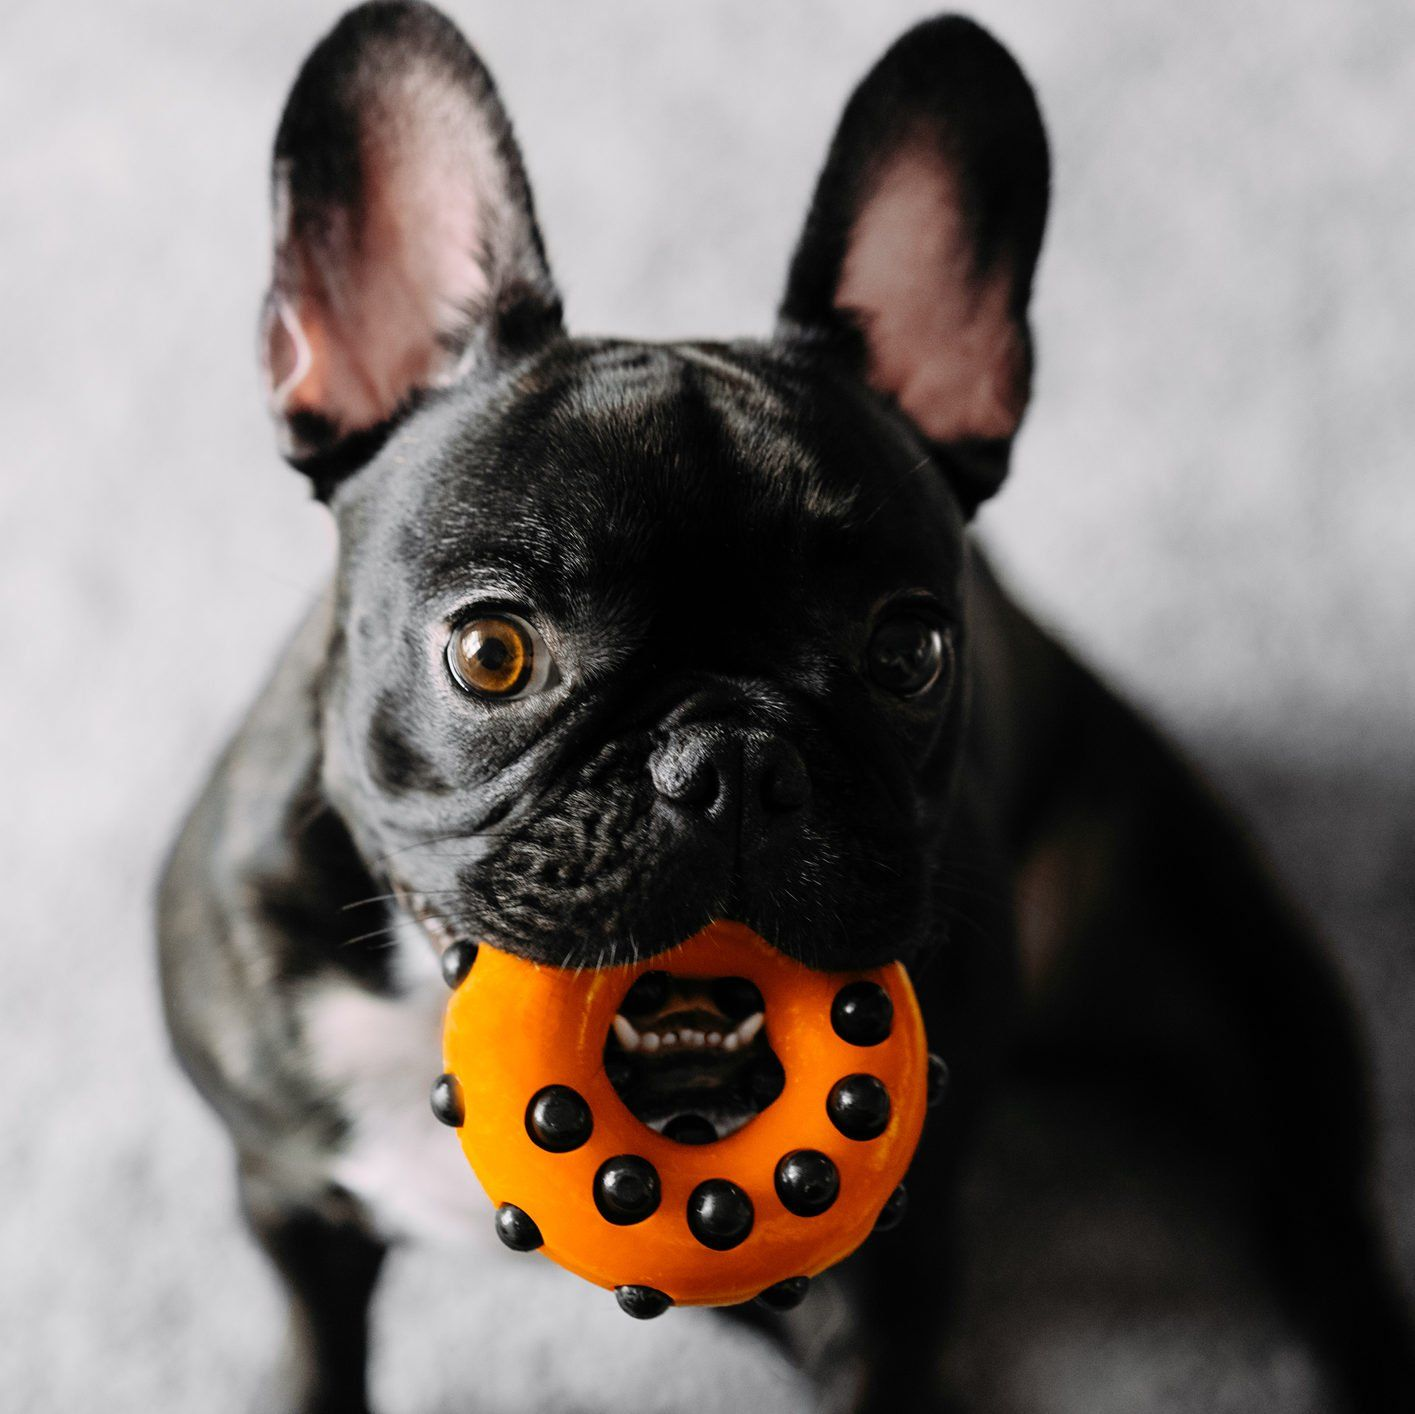 12 Indestructible Dog Toys Even the Toughest Fido Can't